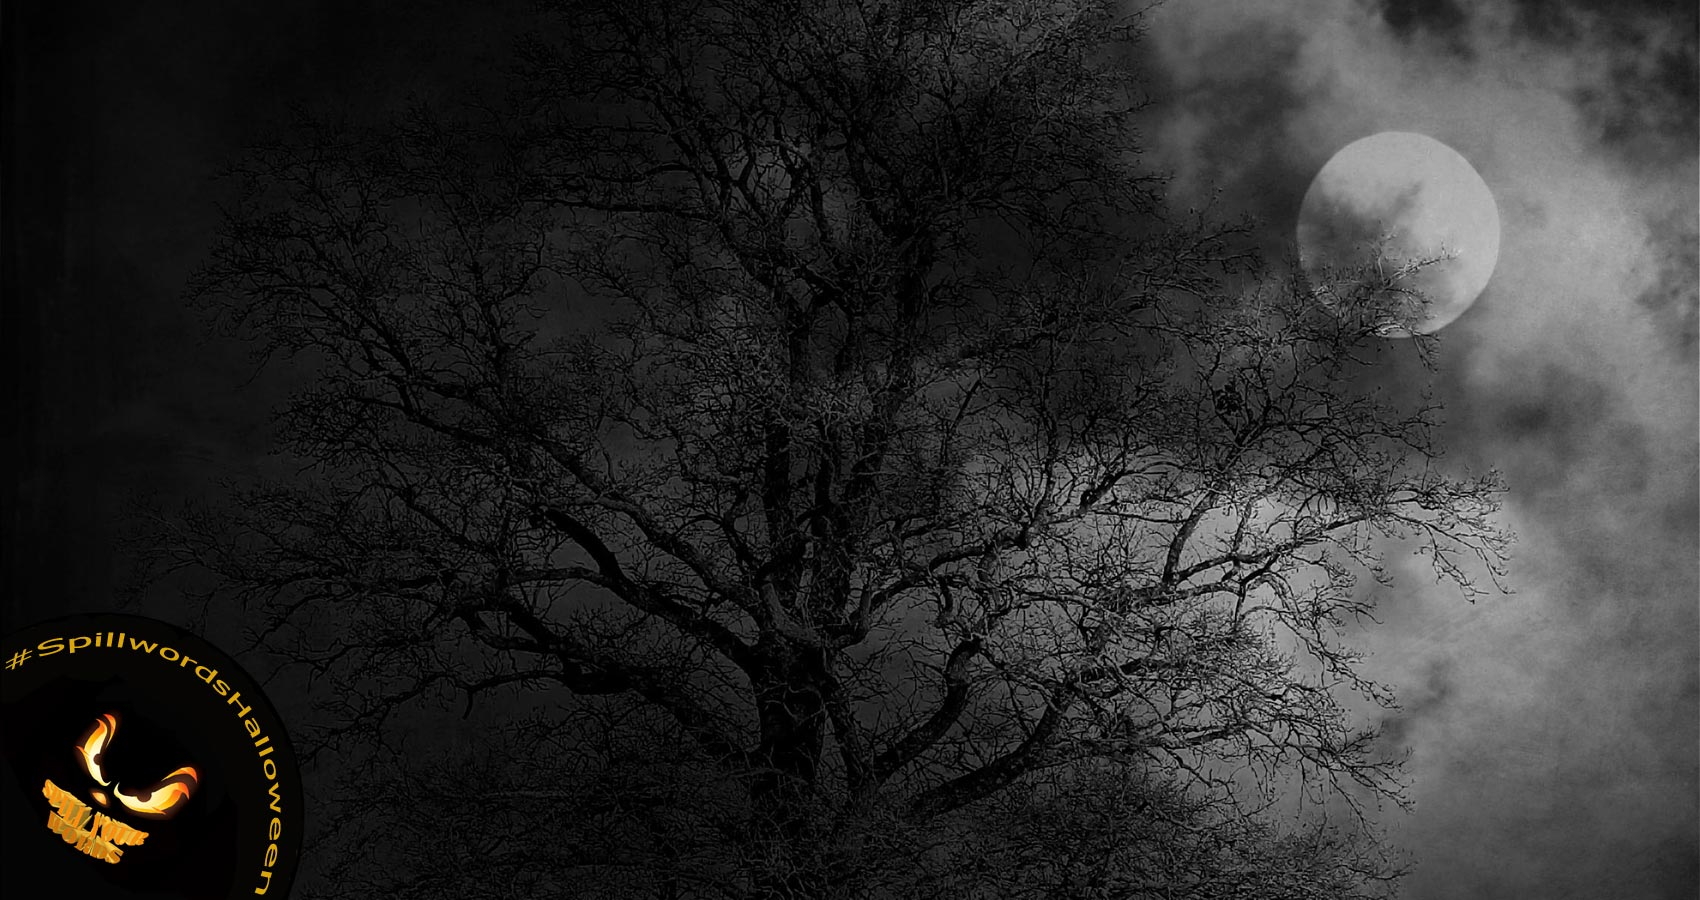 The Halloween Tree, poetry by Candice Pierce at Spillwords.com